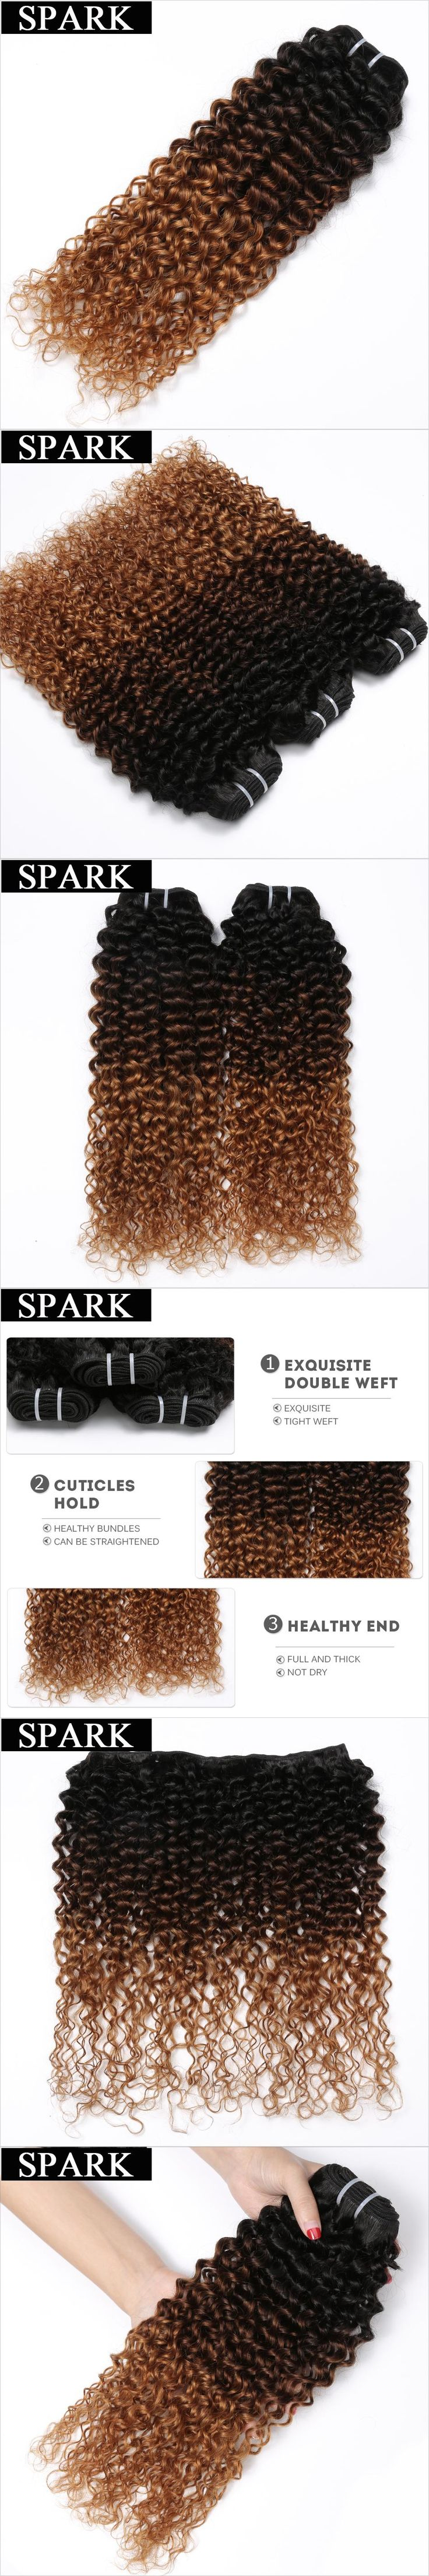 Spark Hair 1 PC Ombre Brazilian Kinky Curly Weave Human Hair Bundles T1B/4/30 3 Tone Ombre non Remy Hair Extensions No Shedding